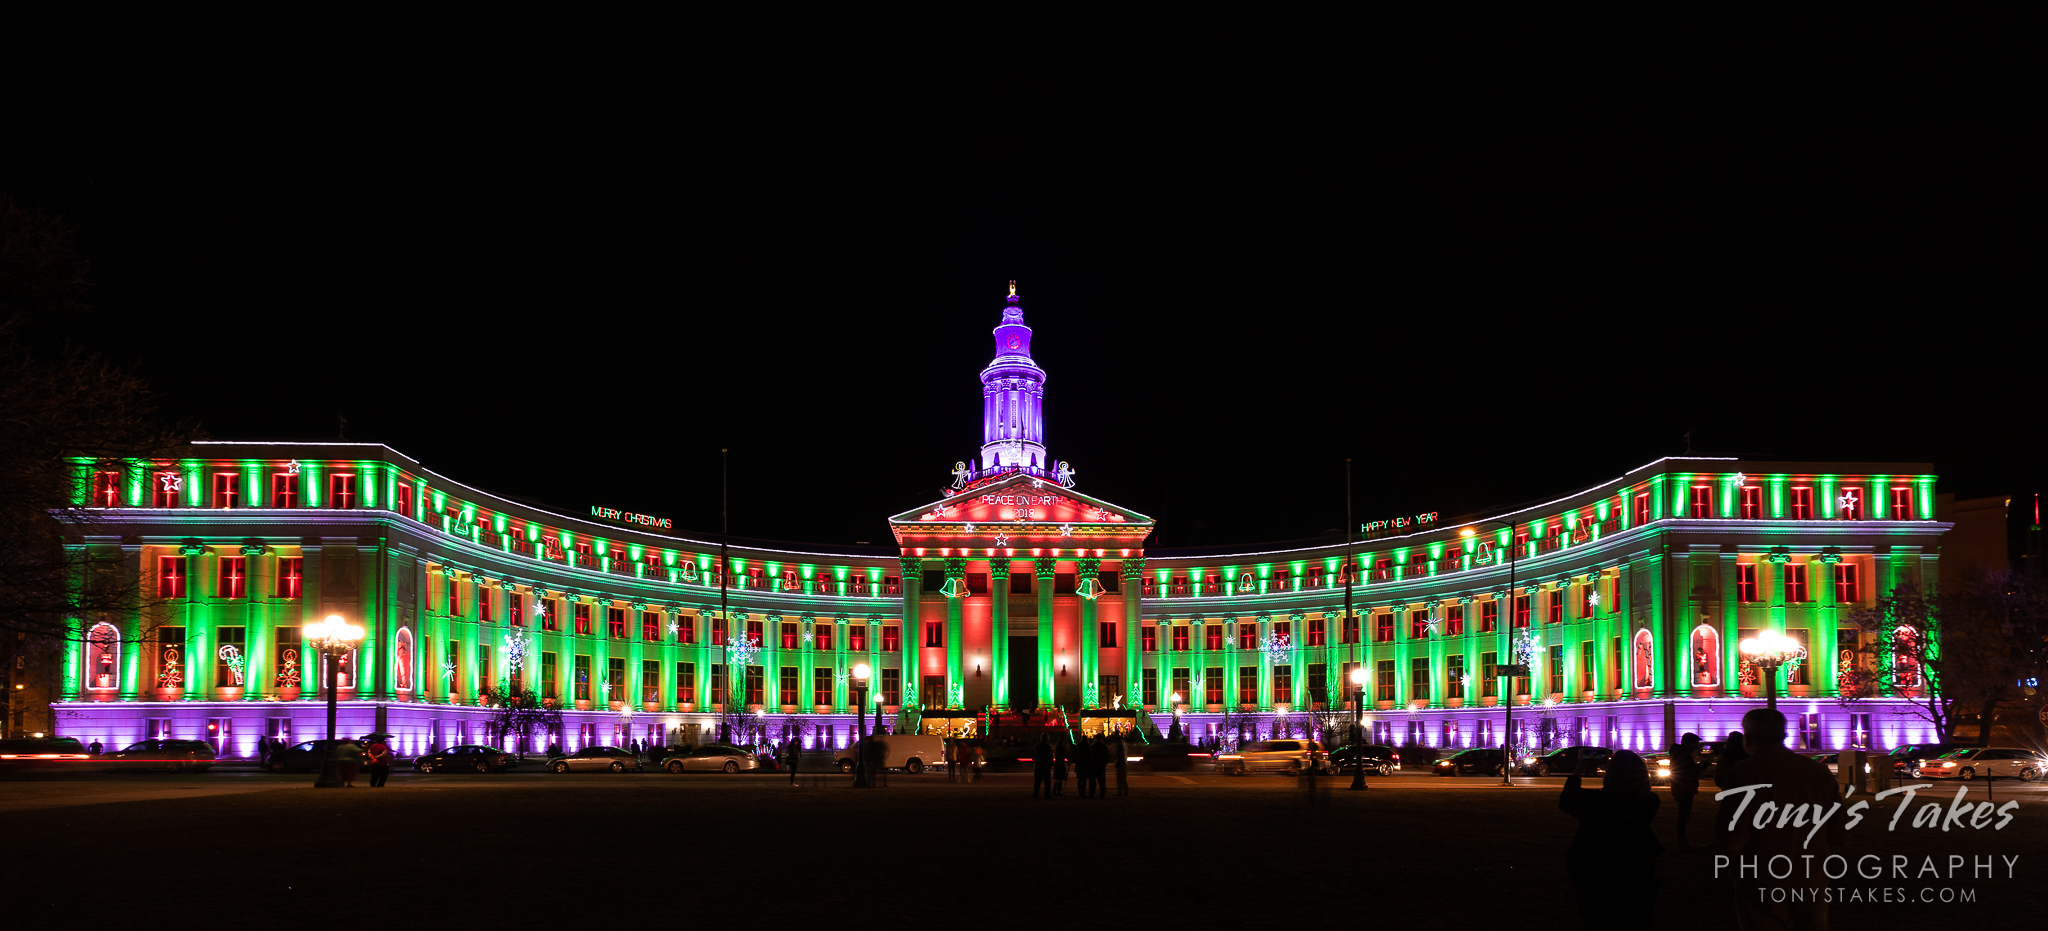 The Denver City and County building lit up in holiday colors for the season. (© Tony's Takes)